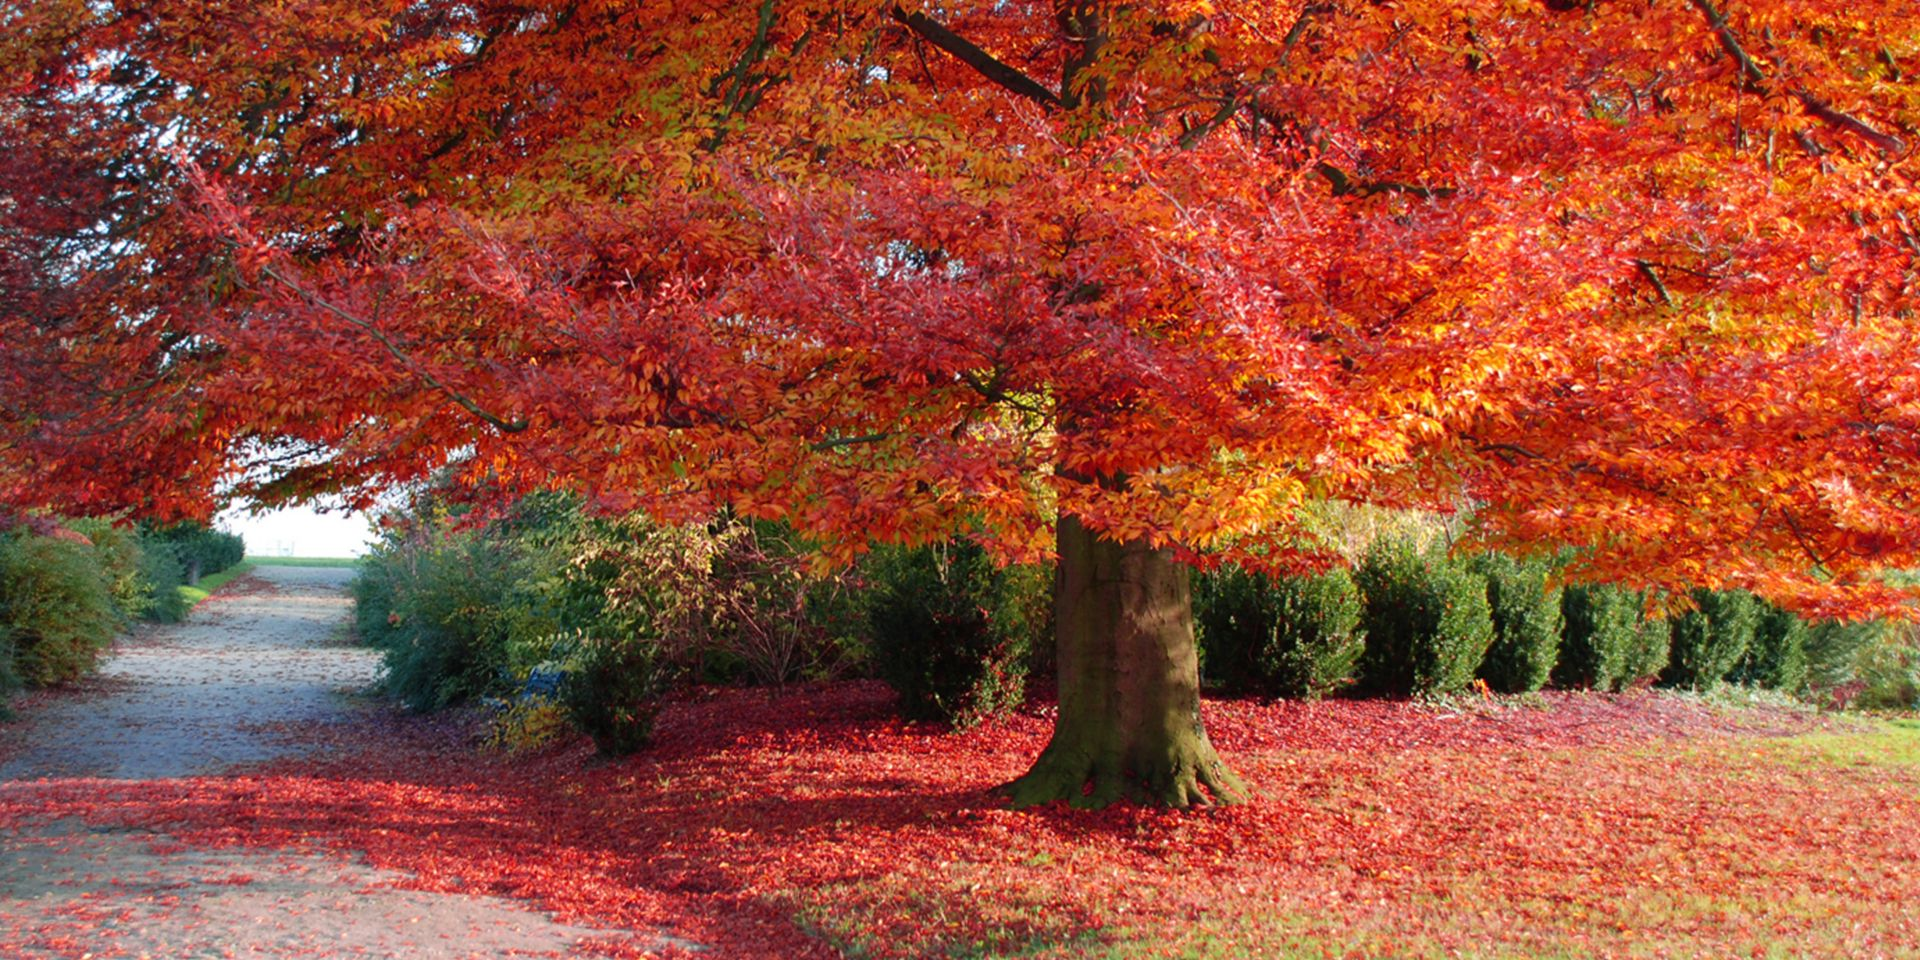 expansive tree in fall